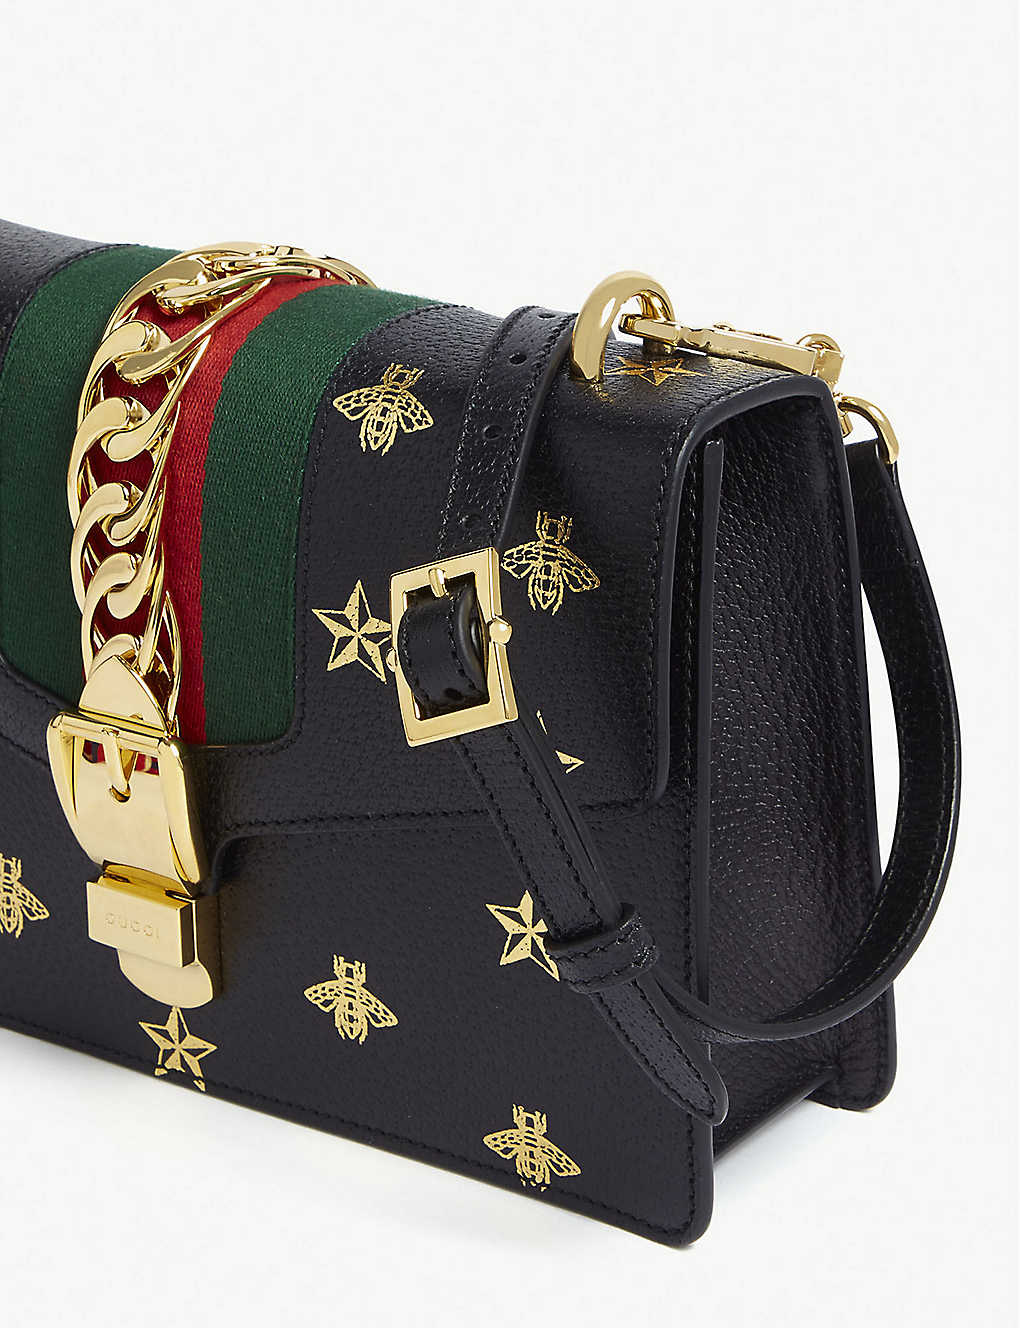 1e48ddbbe452 GUCCI - Sylvie bees leather medium shoulder bag | Selfridges.com